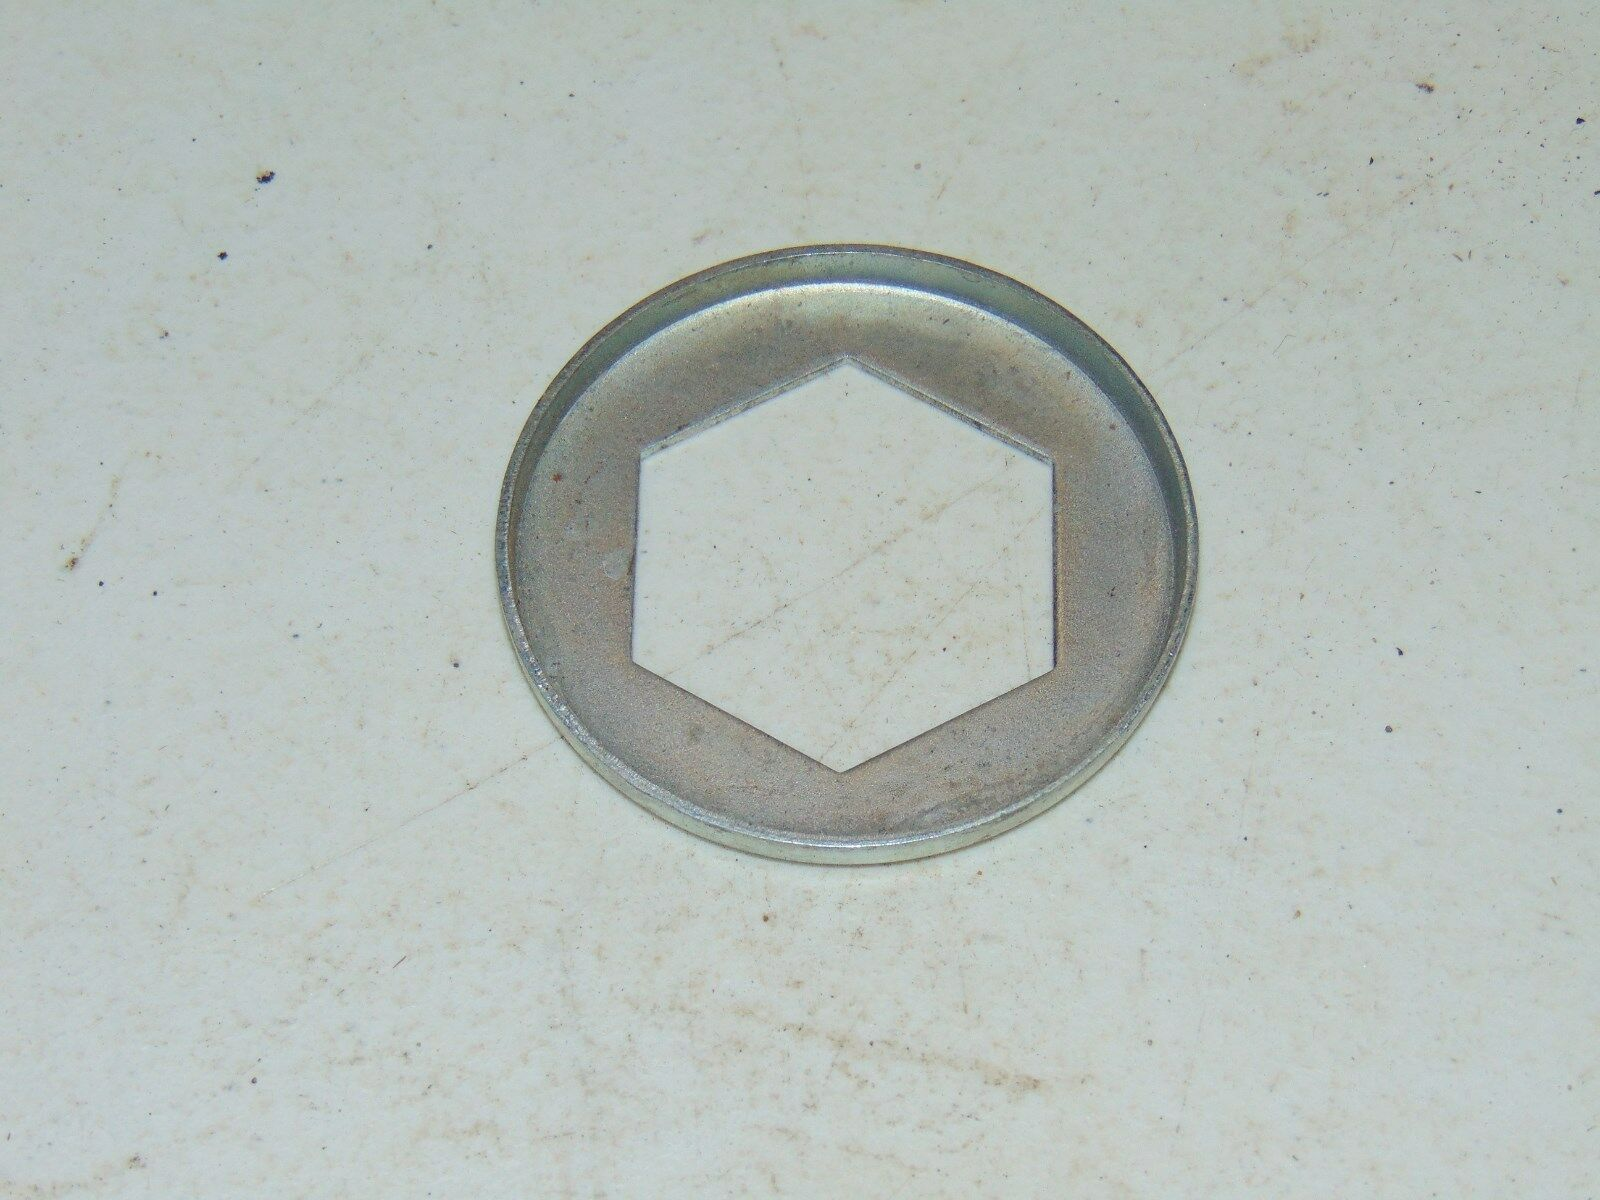 NOS ARCTIC CAT SNOWMOBILE HEX DRIVE CLUTCH WASHER CUP 0146-267